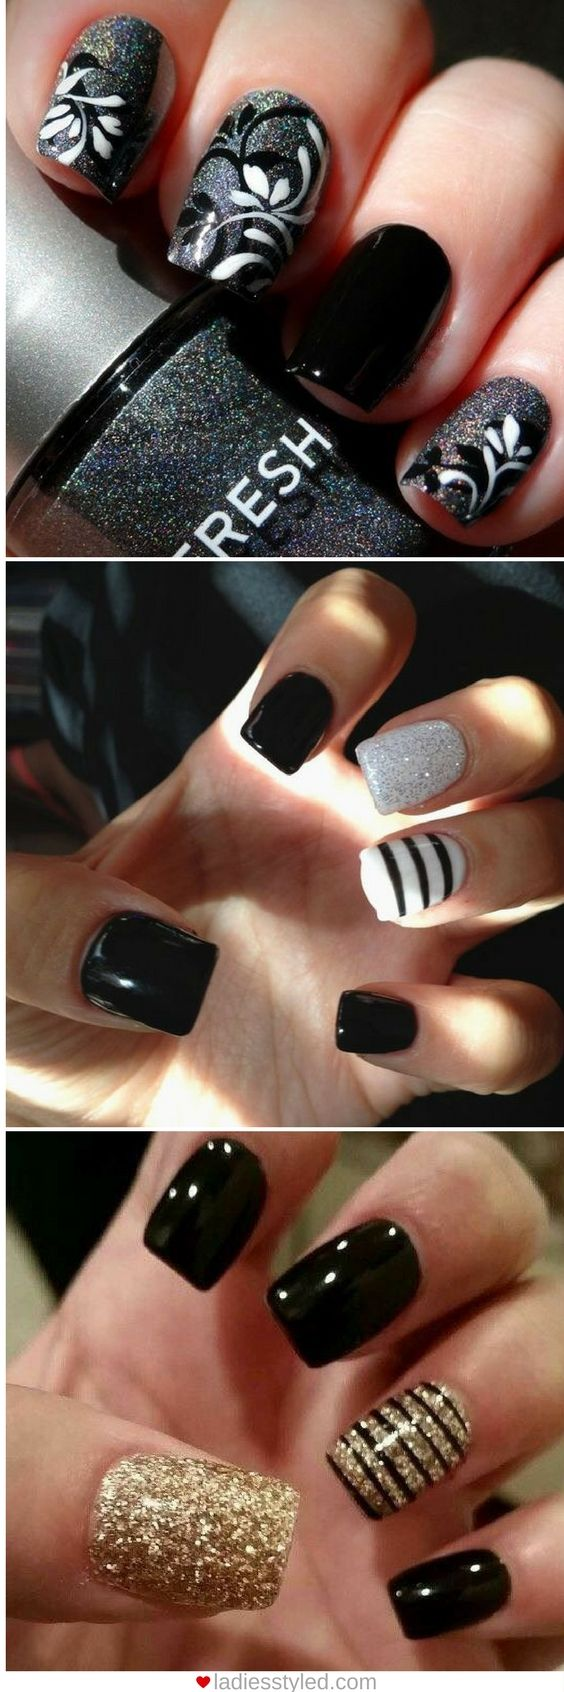 best 25+ nail art designs ideas on pinterest | nail design, pretty